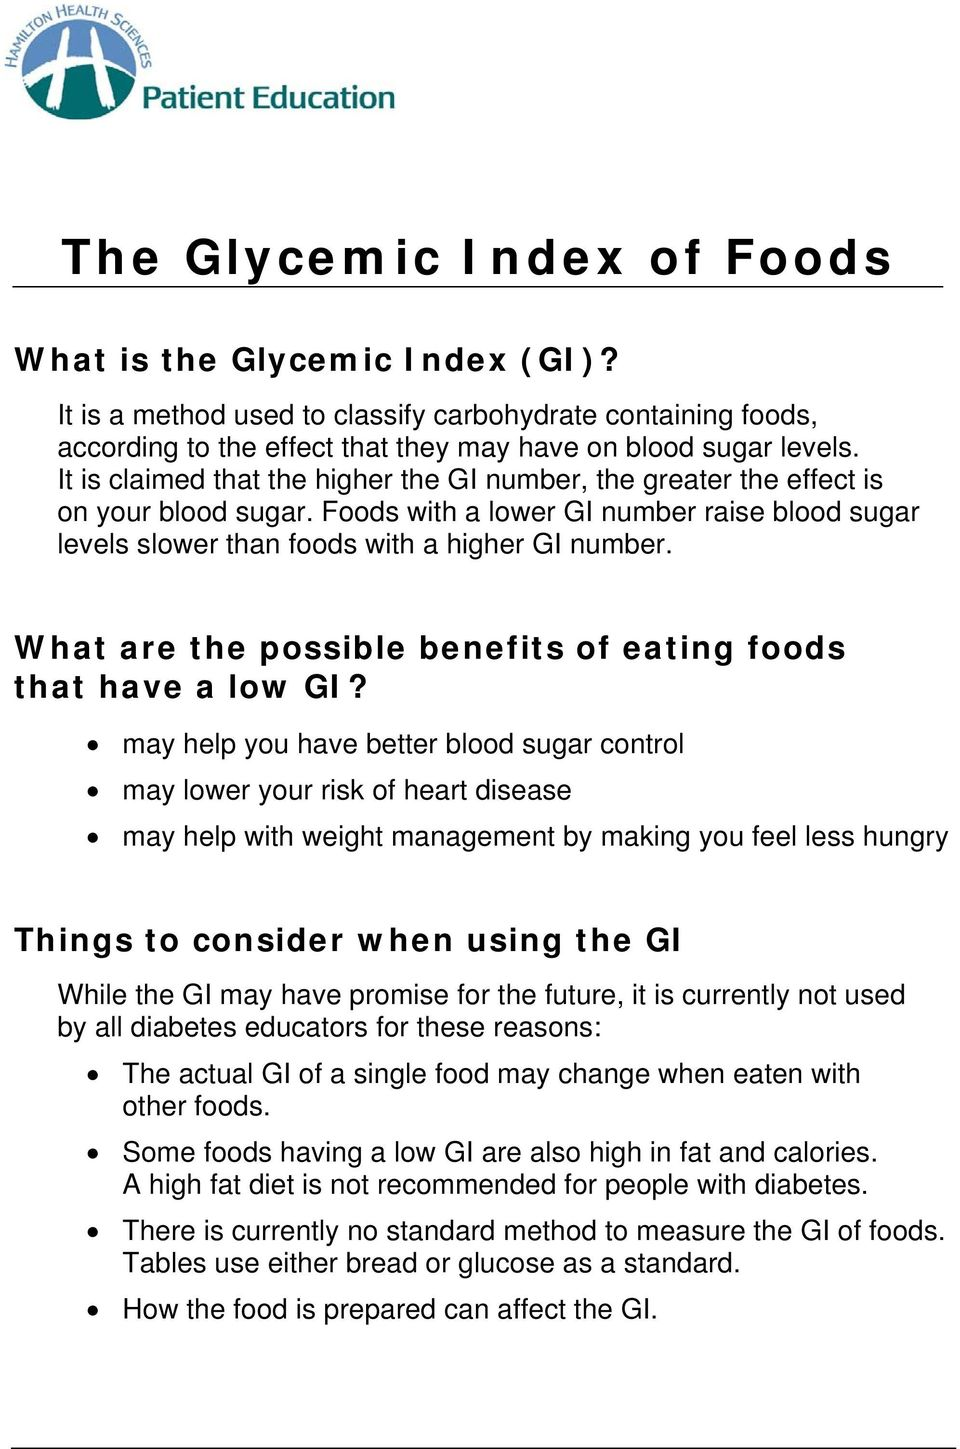 What are the possible benefits of eating foods that have a low GI?